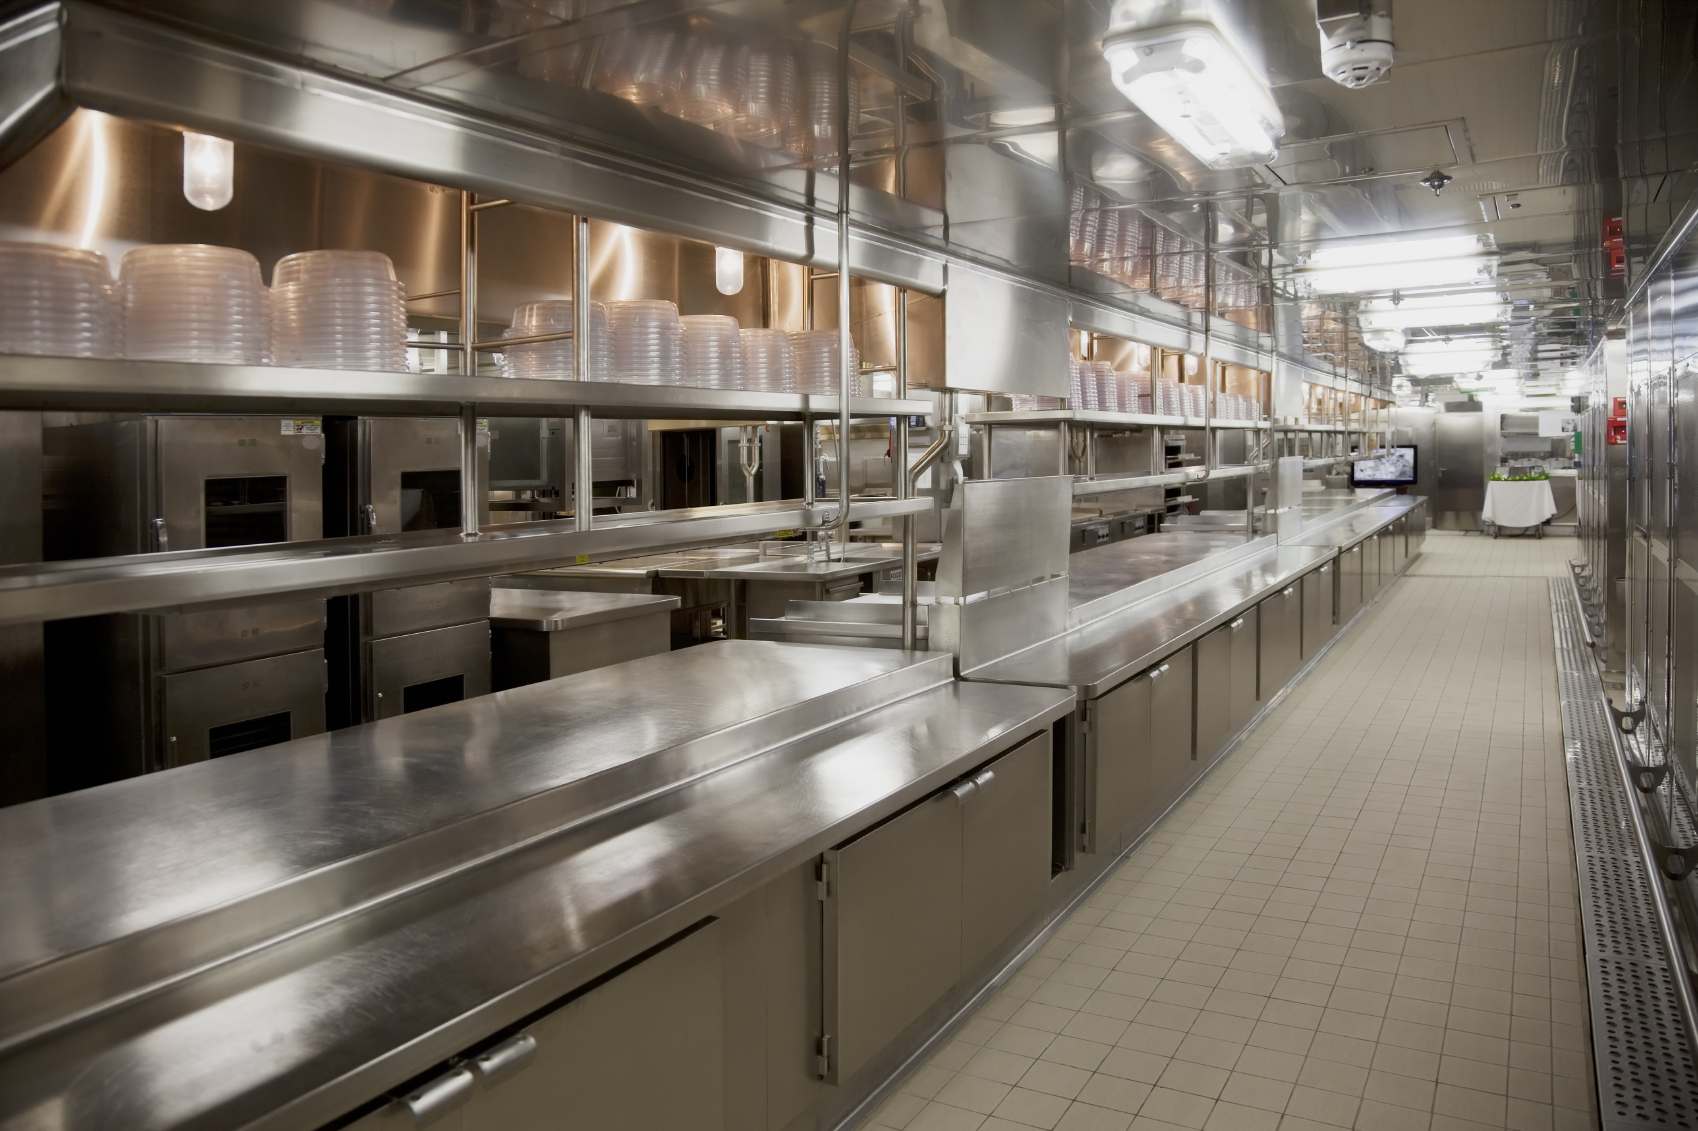 Commercial kitchens comar castle - Professional kitchen designs ...